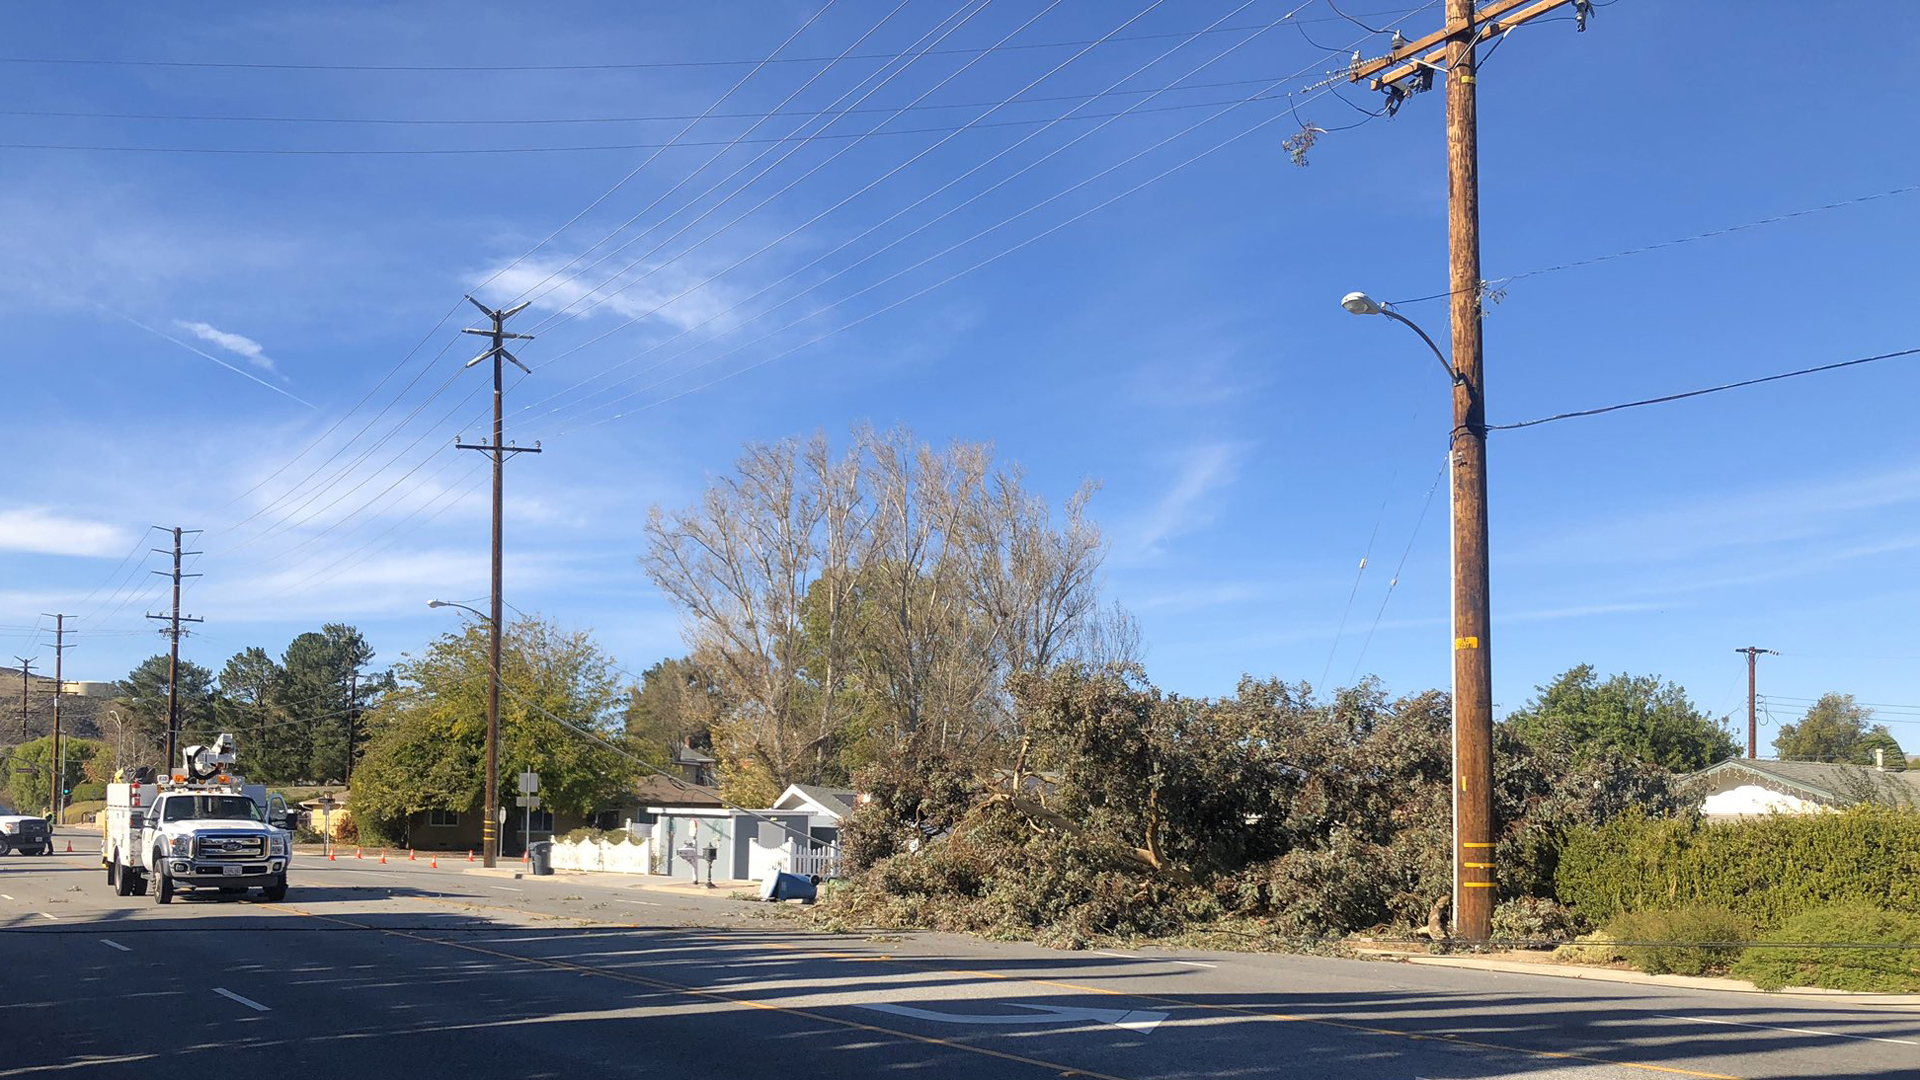 A photo released by the Ventura County Fire Department shows a tree on the ground as powerful winds whipped a Simi Valley neighborhood on Dec. 16, 2019.